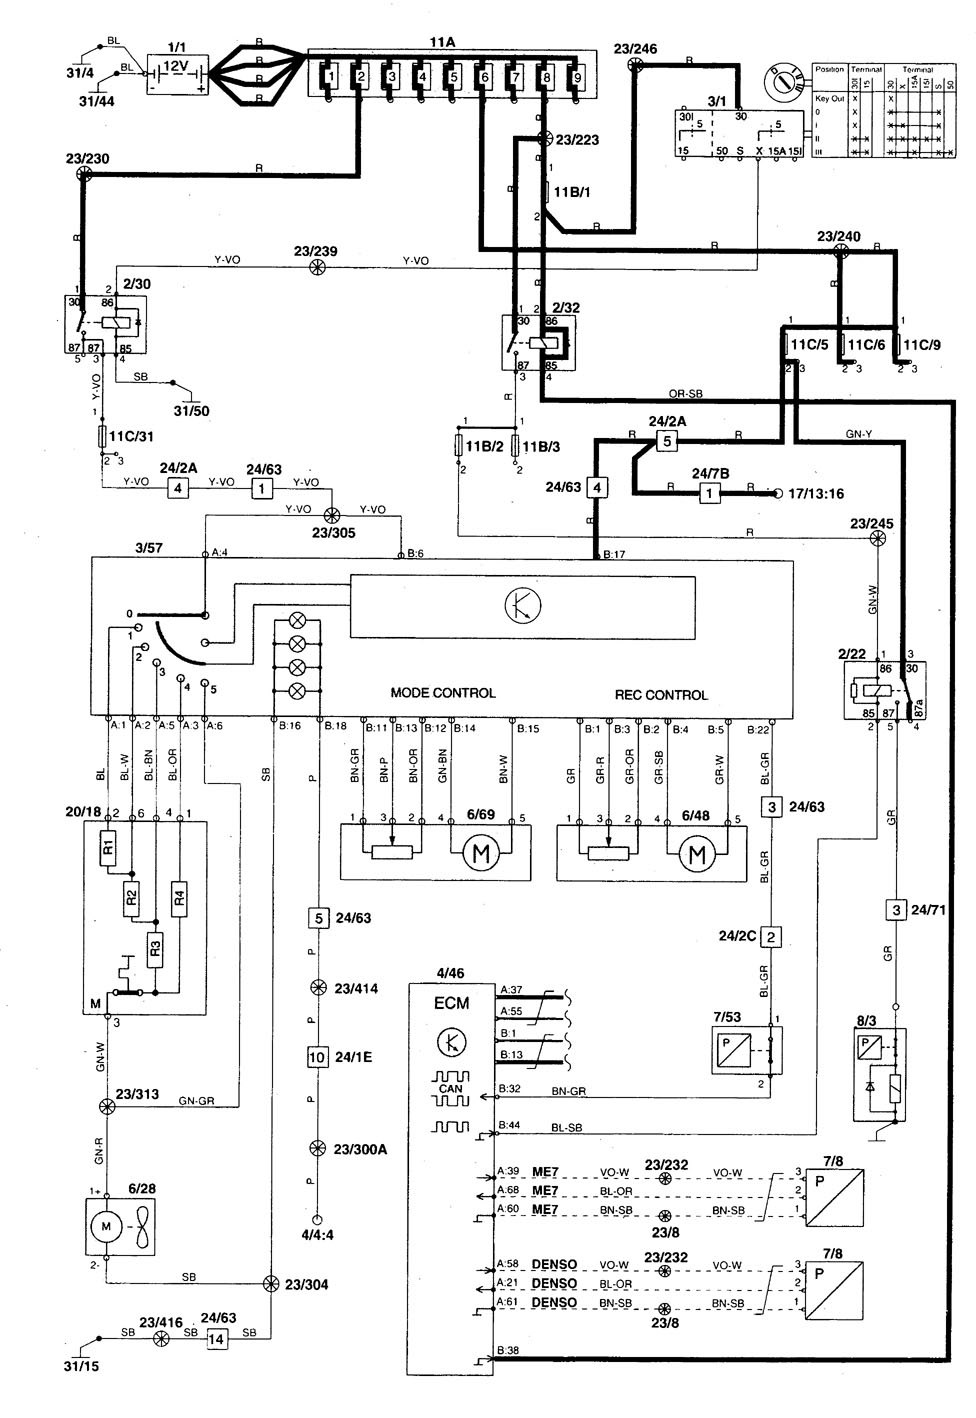 Gmc W4000 Wiring Diagram - Wiring Diagrams Folder on